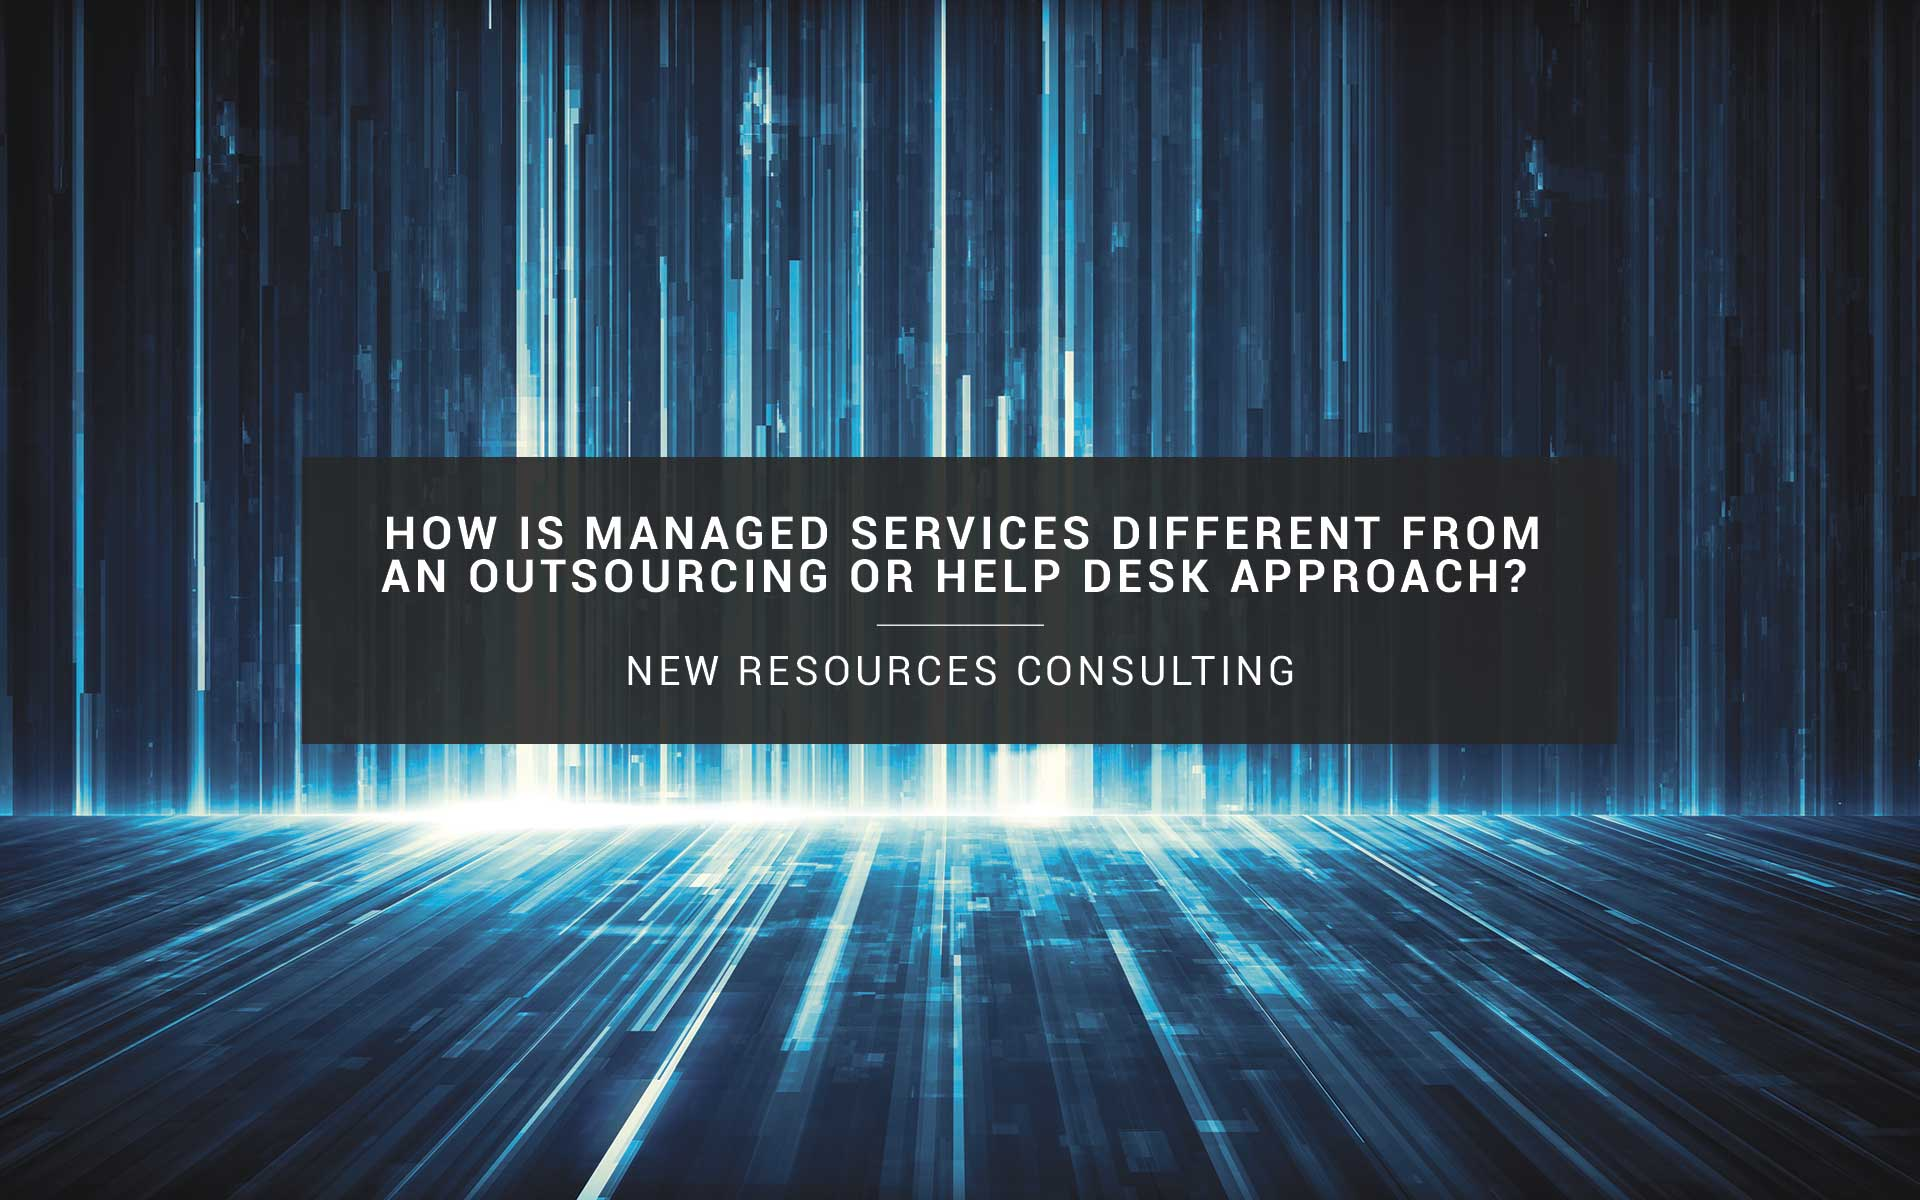 New Resources Consulting | Managed Services